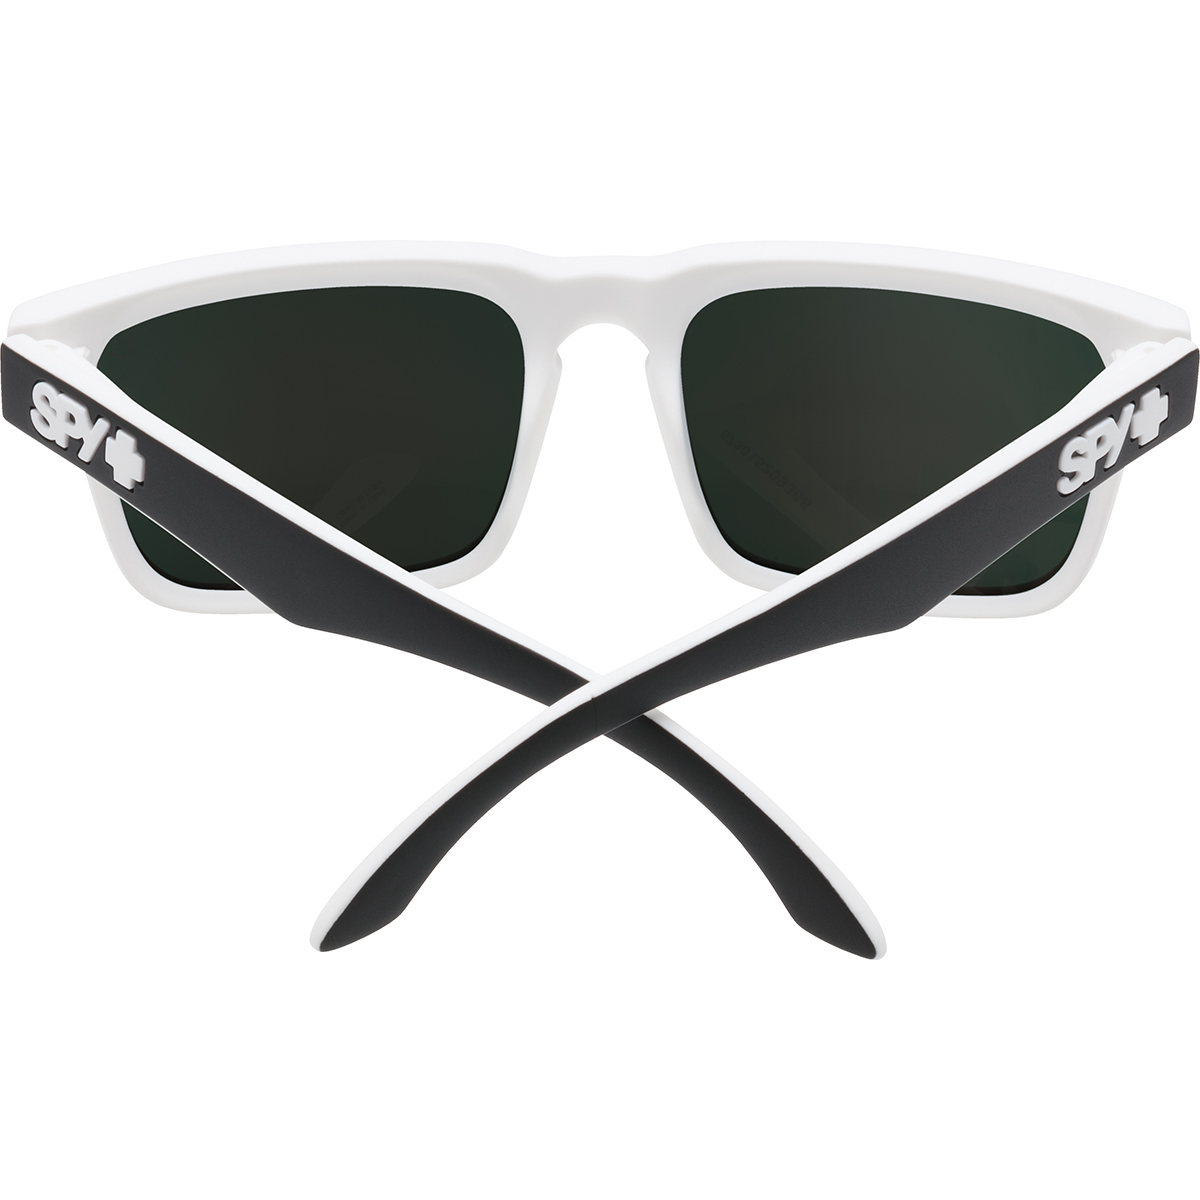 SPY SUNGLASSES スパイ サングラス HELM ヘルム WHITEWALL - HAPPY GRAY GREEN w/ RED SPECTRA 673015209365